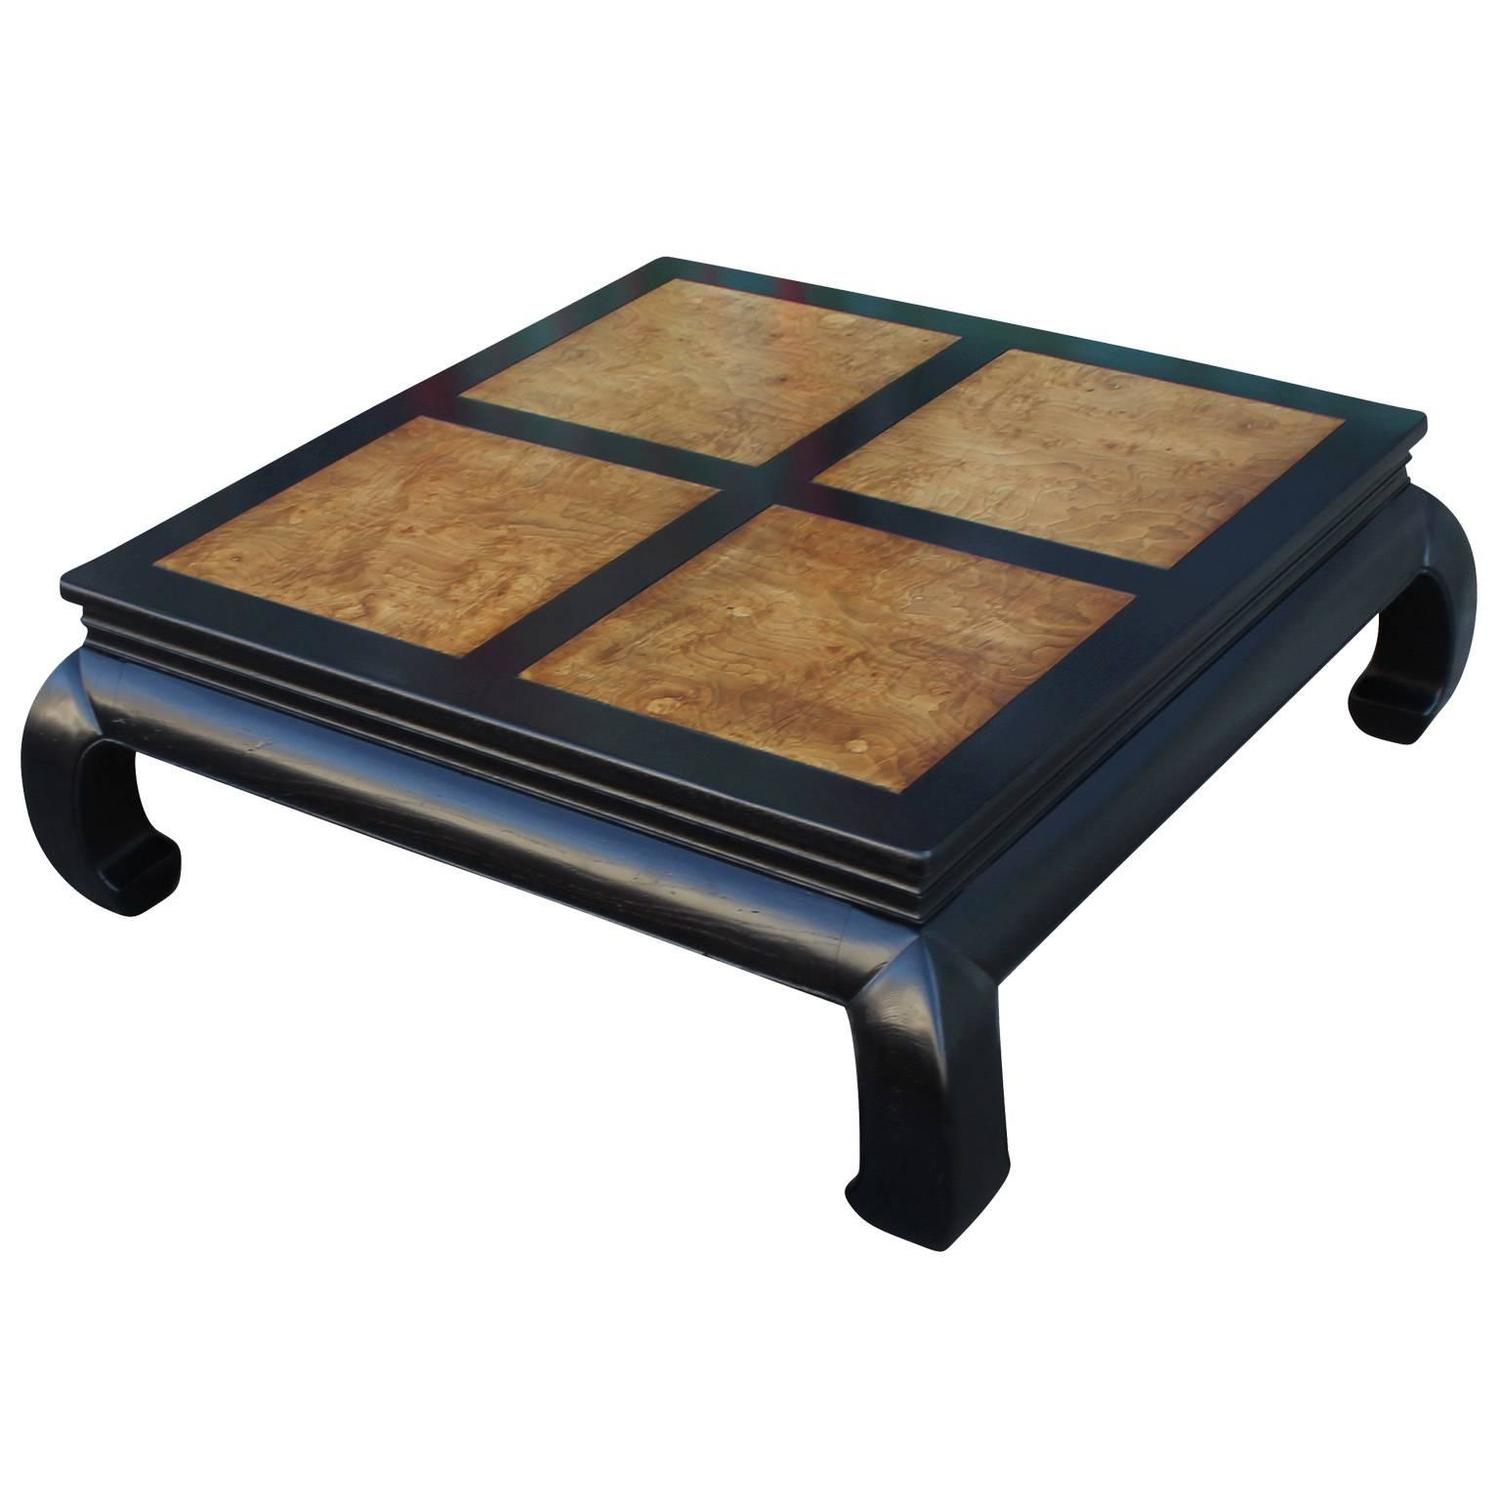 Two Tone Burl Wood Ming Style Square Coffee Table by Henredon at